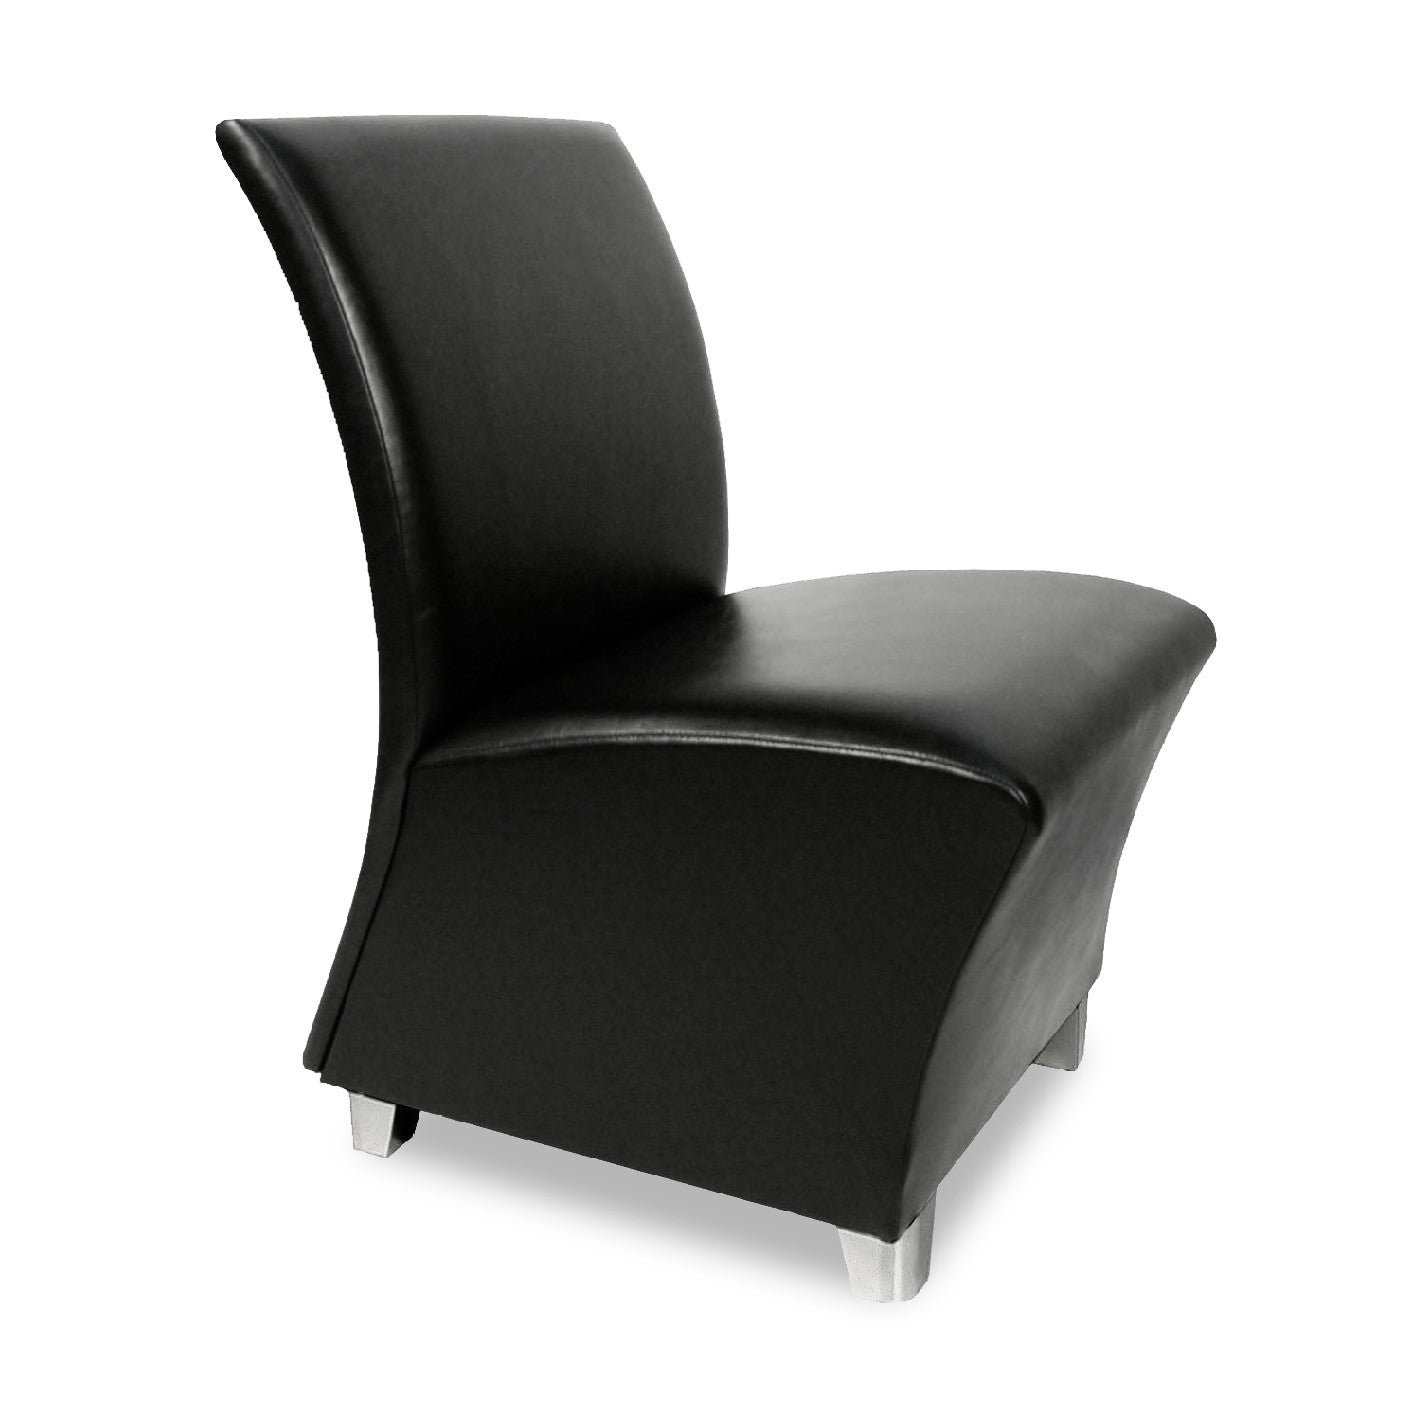 Lanai Reception Chair on Legs - Collins